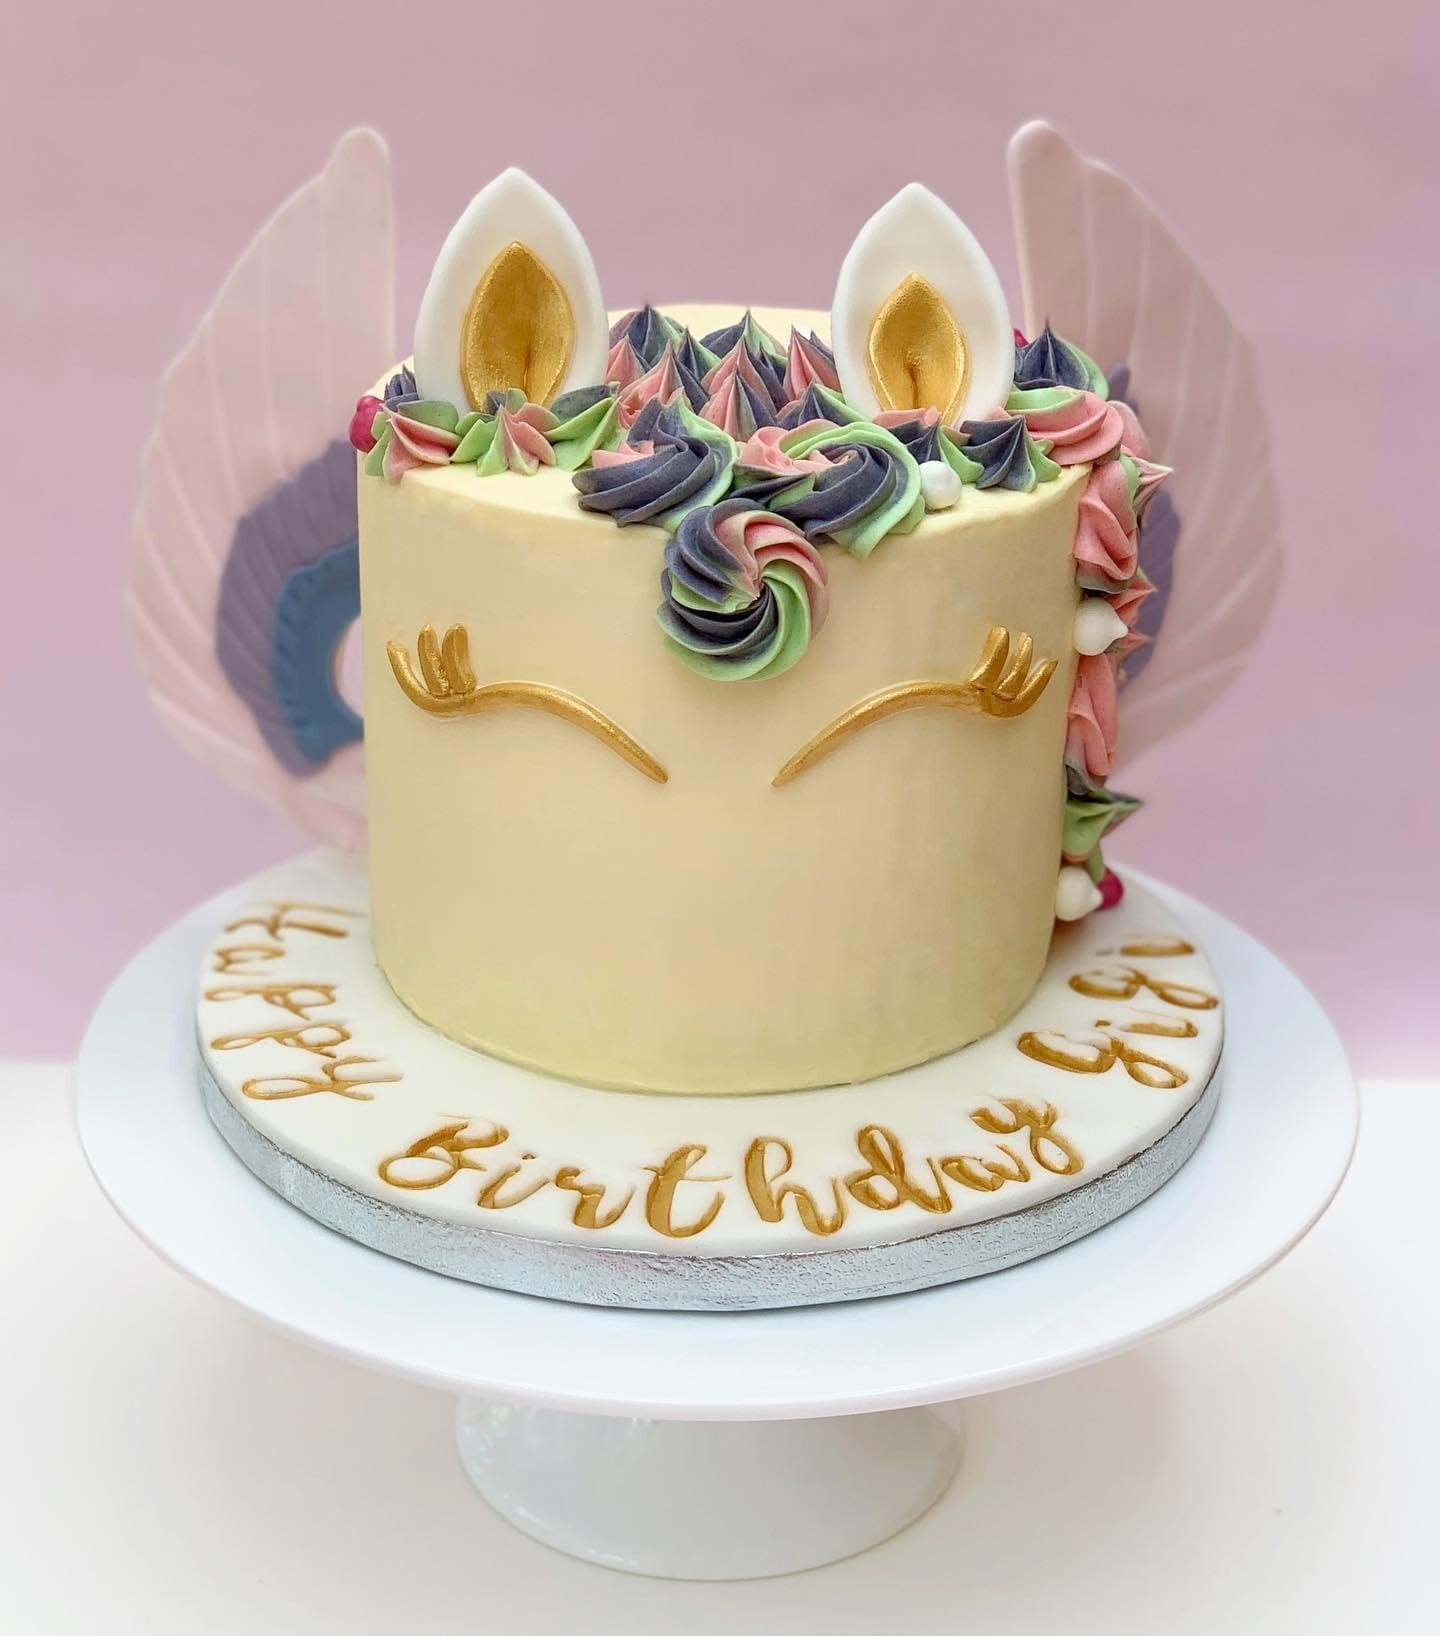 Pegasus Cake with Rainbow Sponge